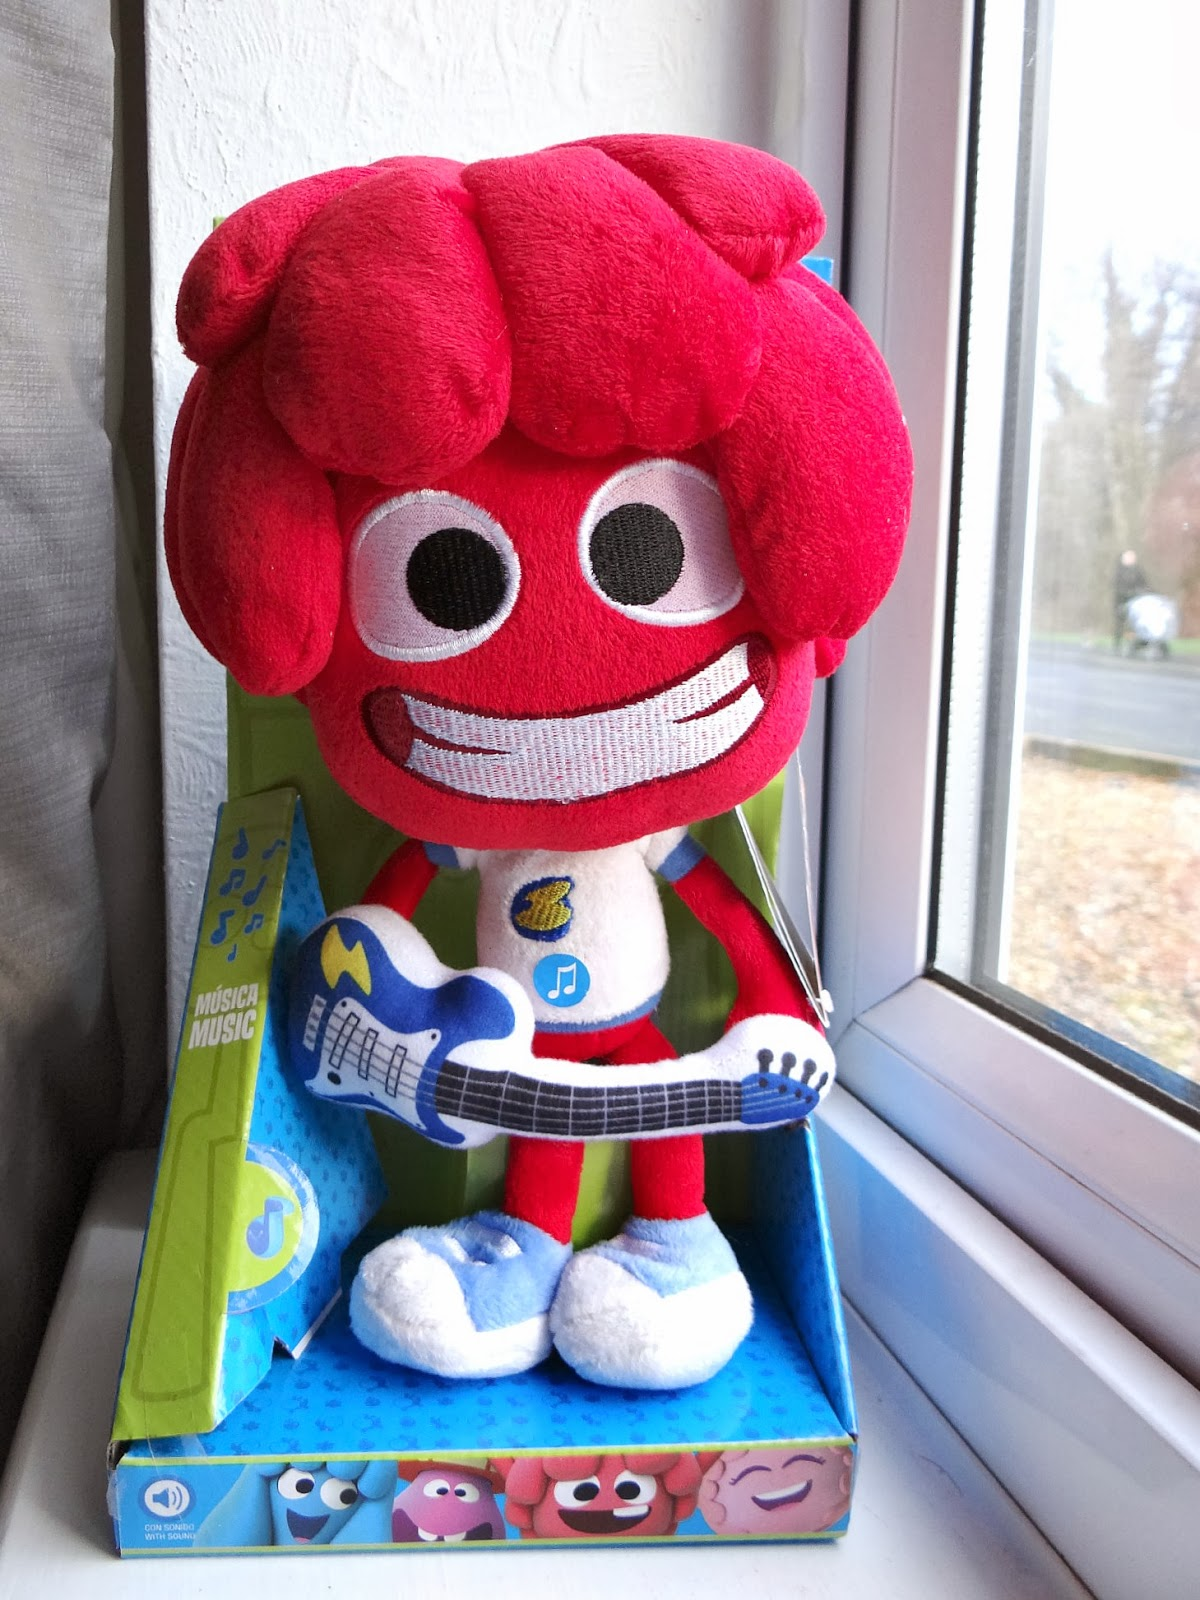 Jelly Jamm UK. Jelly Jamm toys, musical Bello